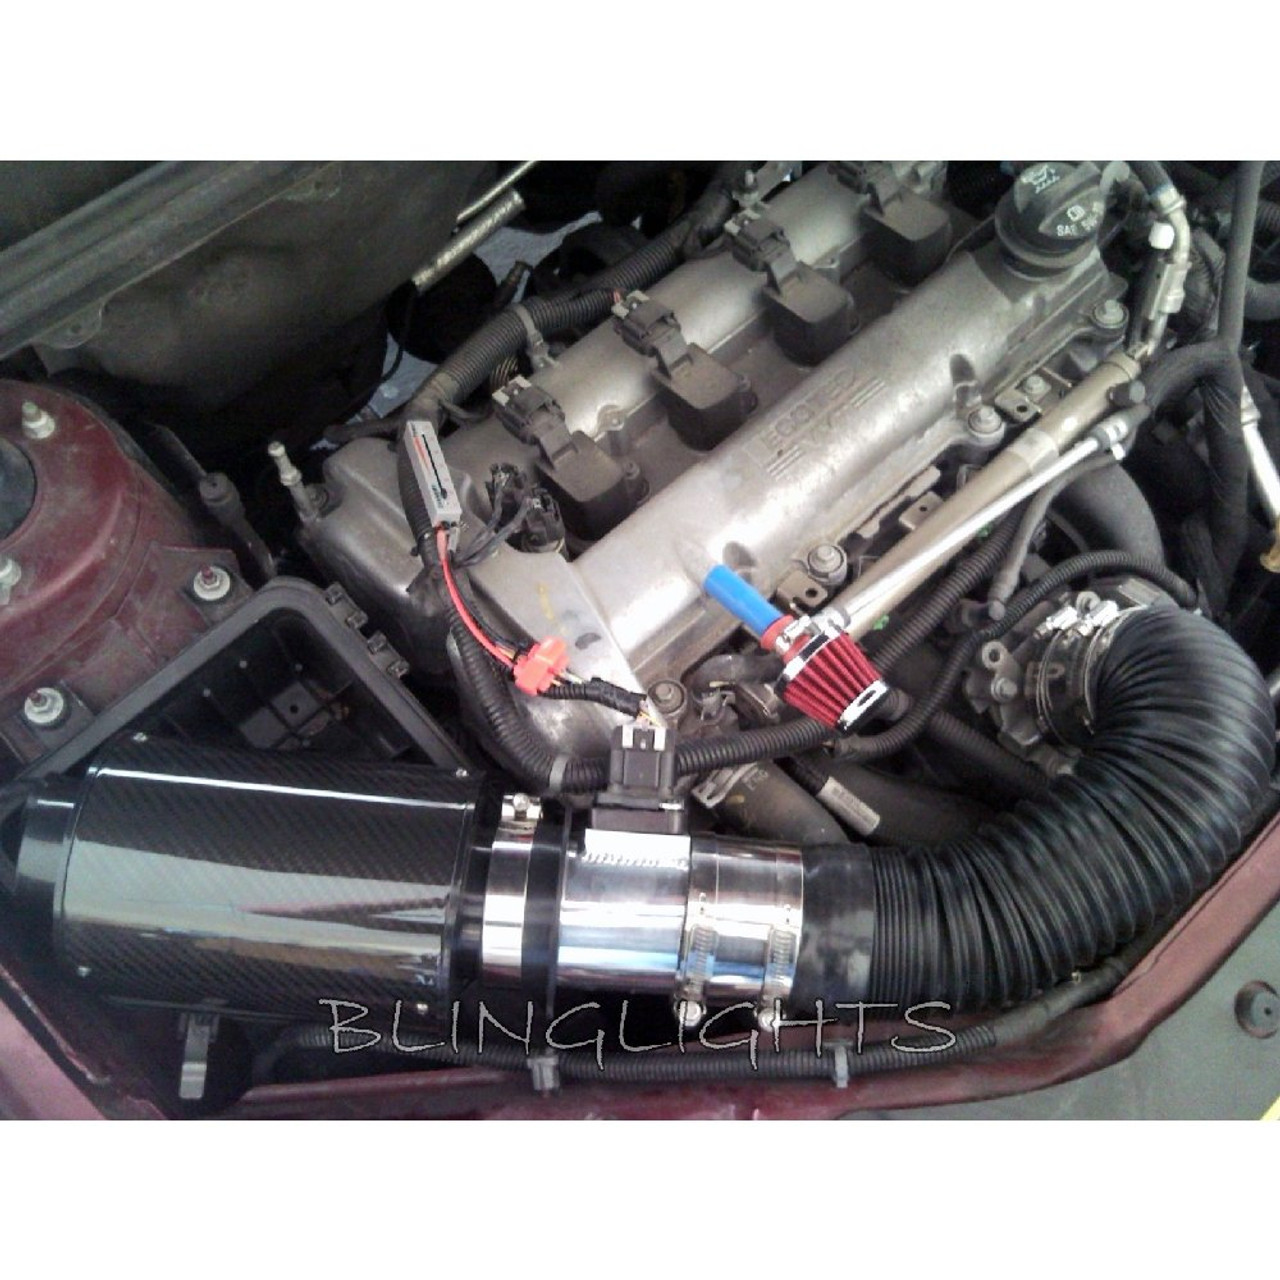 [DIAGRAM_3ER]  2003 2004 2005 2006 2007 Saturn Ion CAI Cold Air Intake Kit 2.2 L 2.2L -  BlingLights.com | 2007 Saturn Ion Fuel Filter |  | BlingLights.com